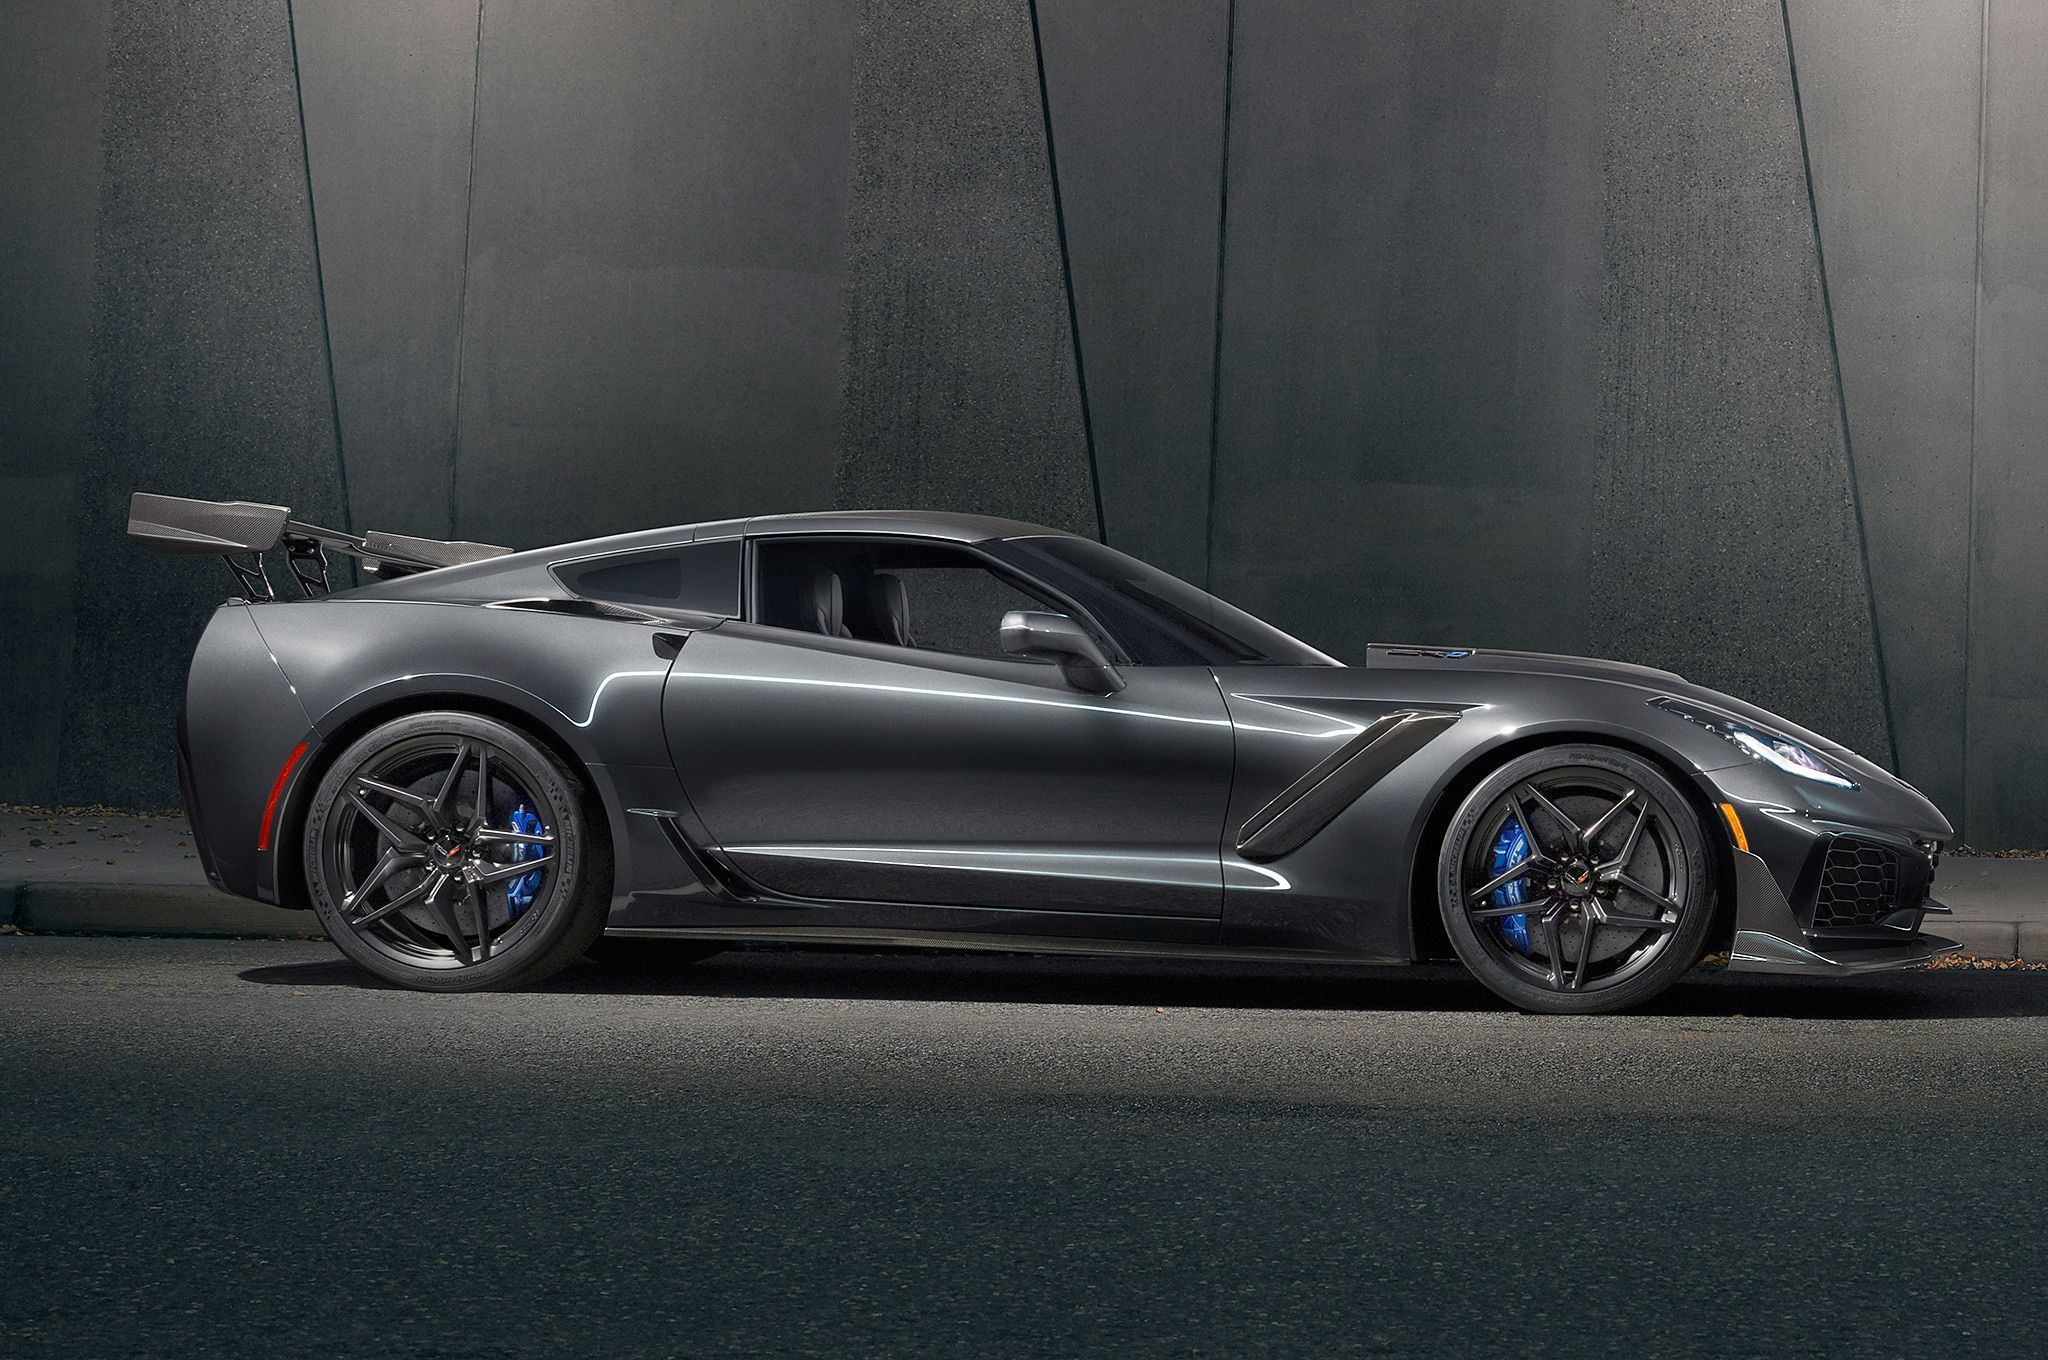 2019 Chevrolet Corvette Zr1 Side View Jpg 2 048 1 360 Pixels